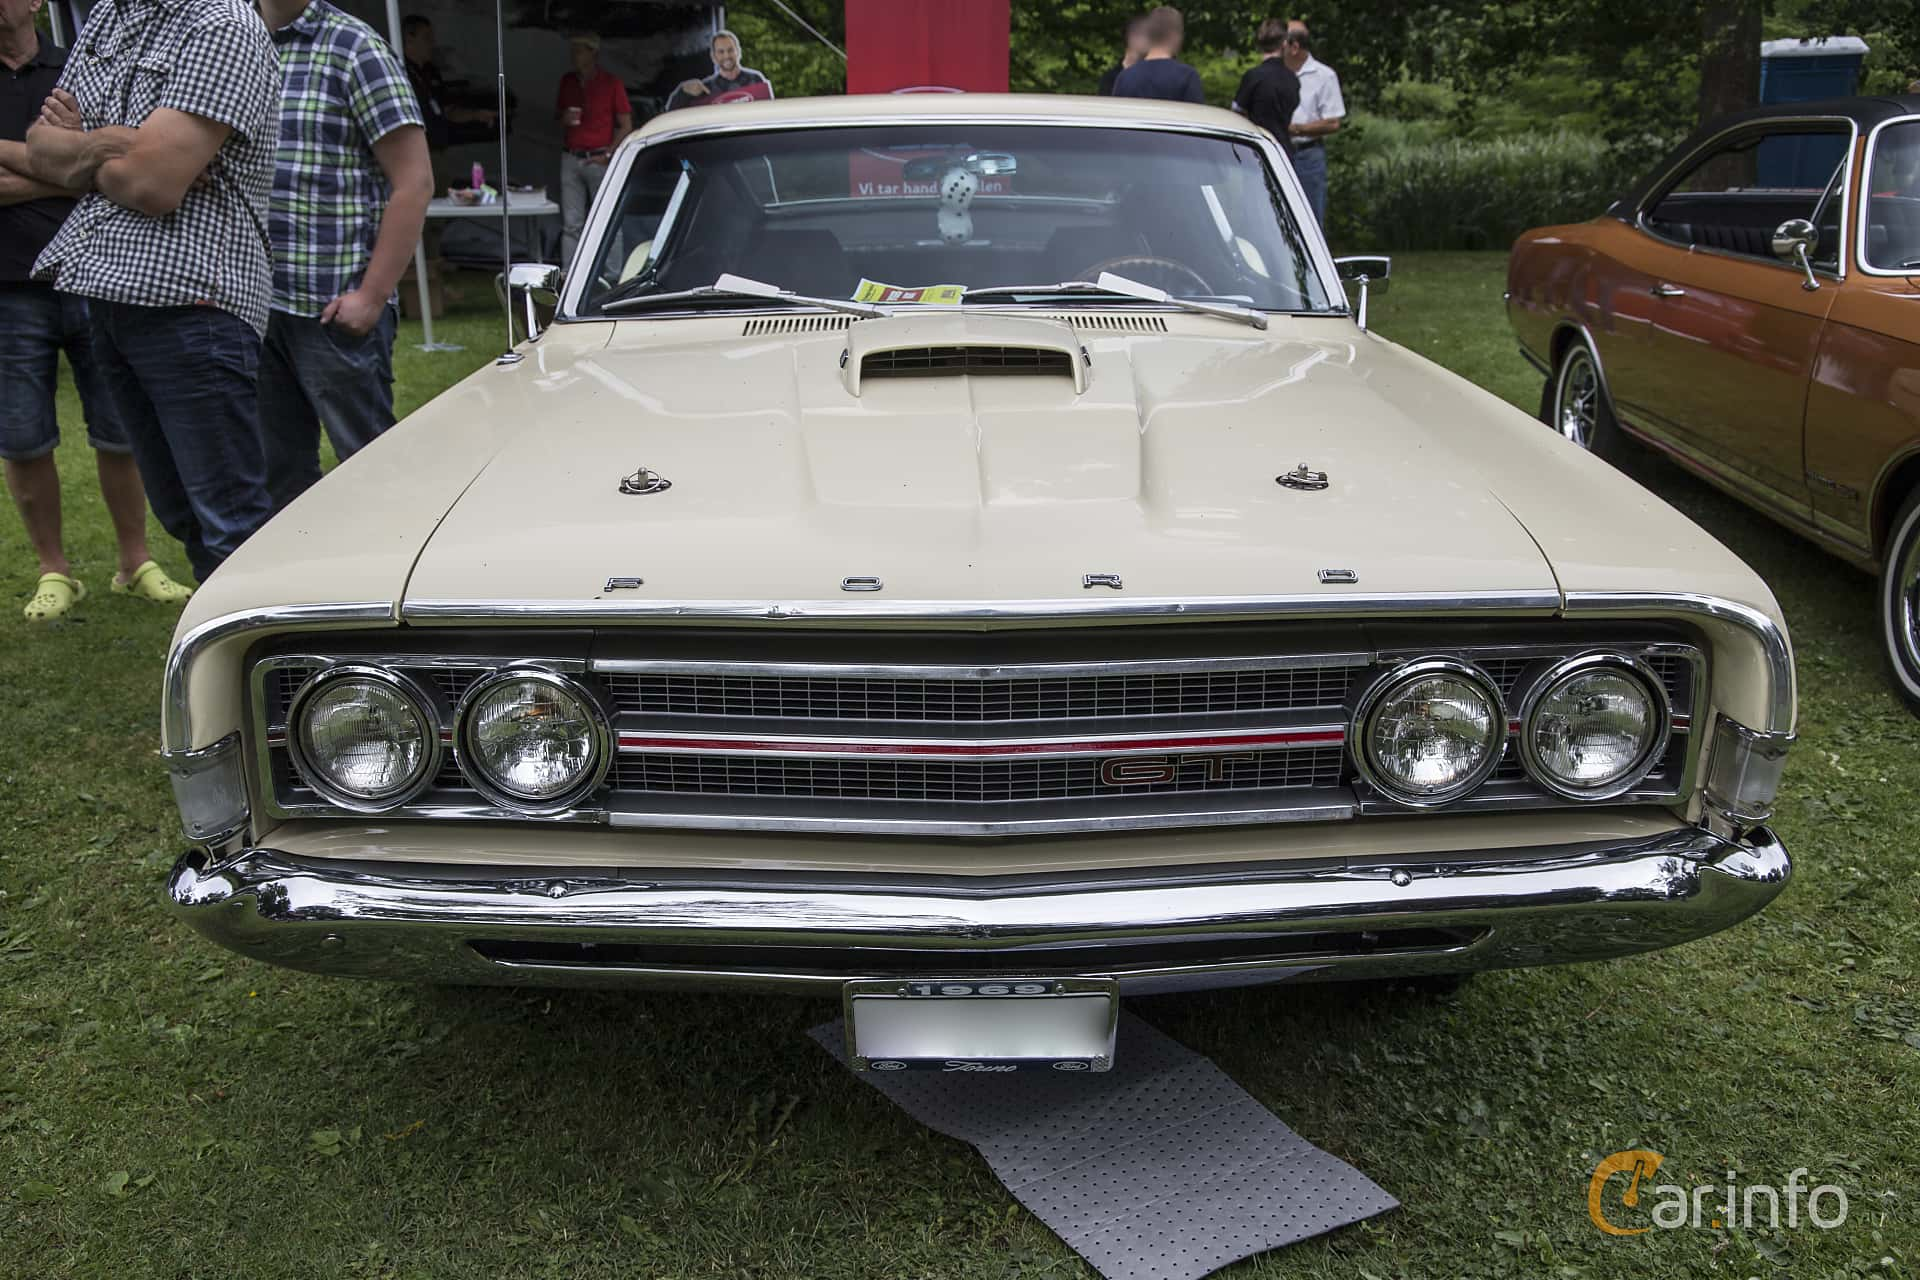 Official Image Taken At Camera Logo Review A Car 1969 Ford Torino Gt Convertible Fastback 64 V8 Automatic 324hp Ronneby Nostalgia Festival 2016